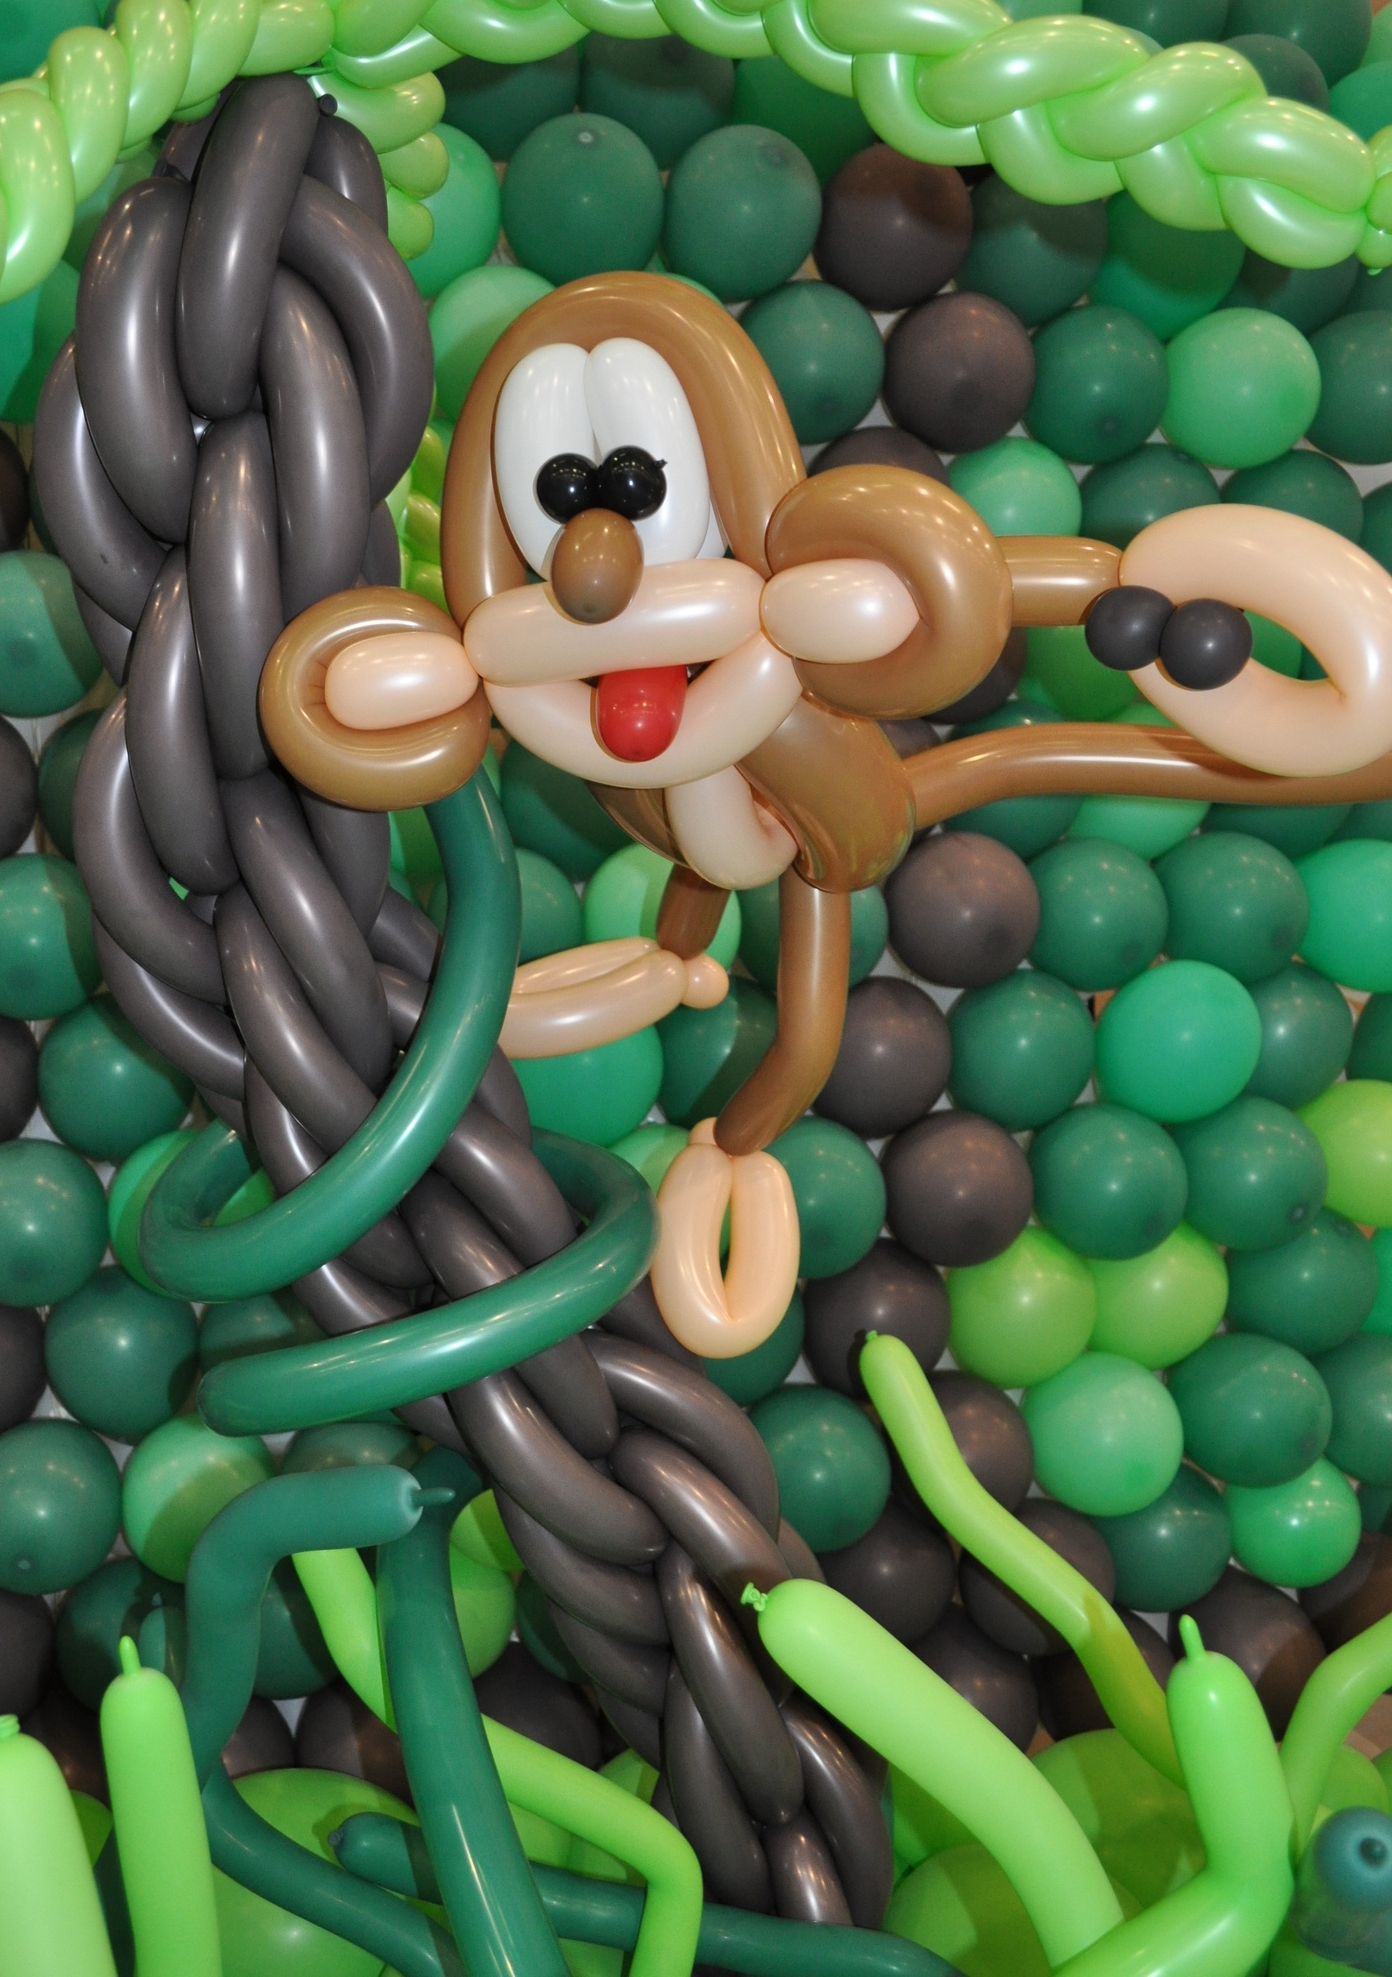 Balloon monkey throwing balloon poop